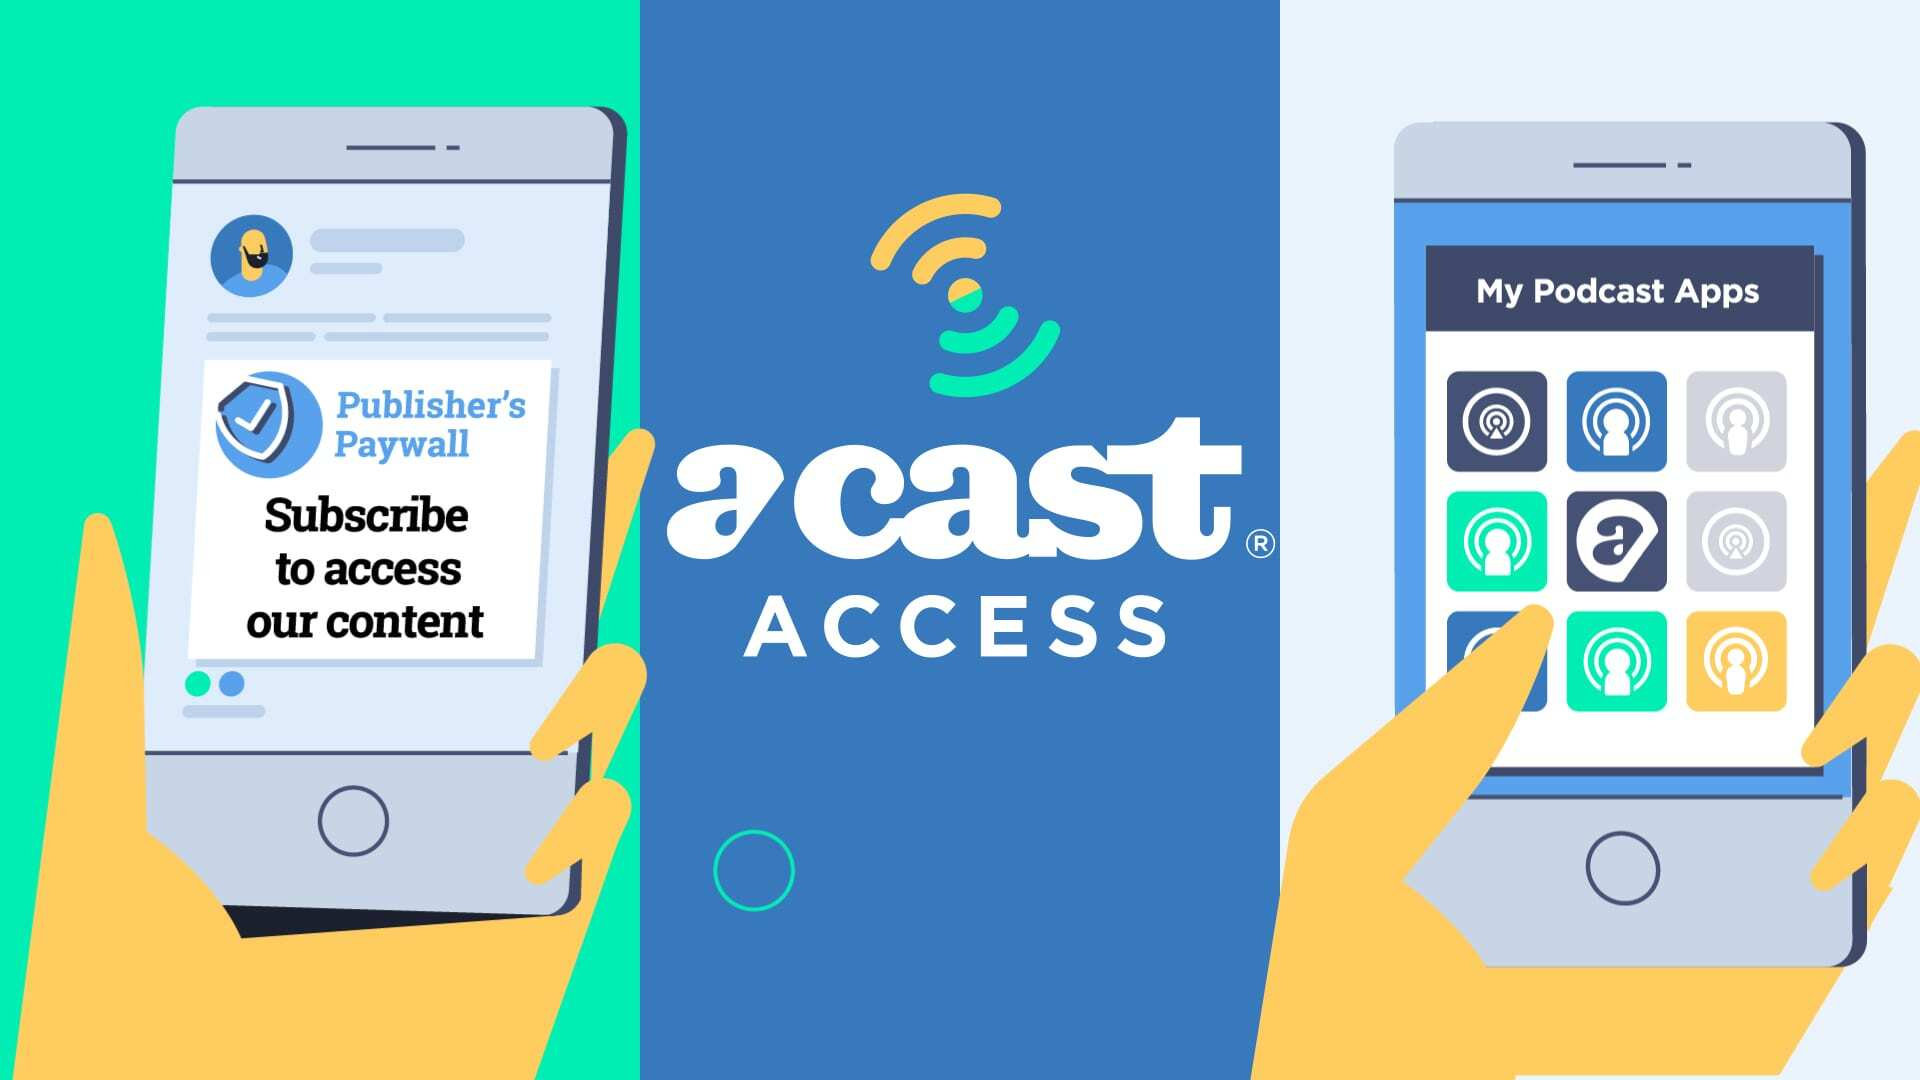 https://www.moveanimation.com/project/acast-access/